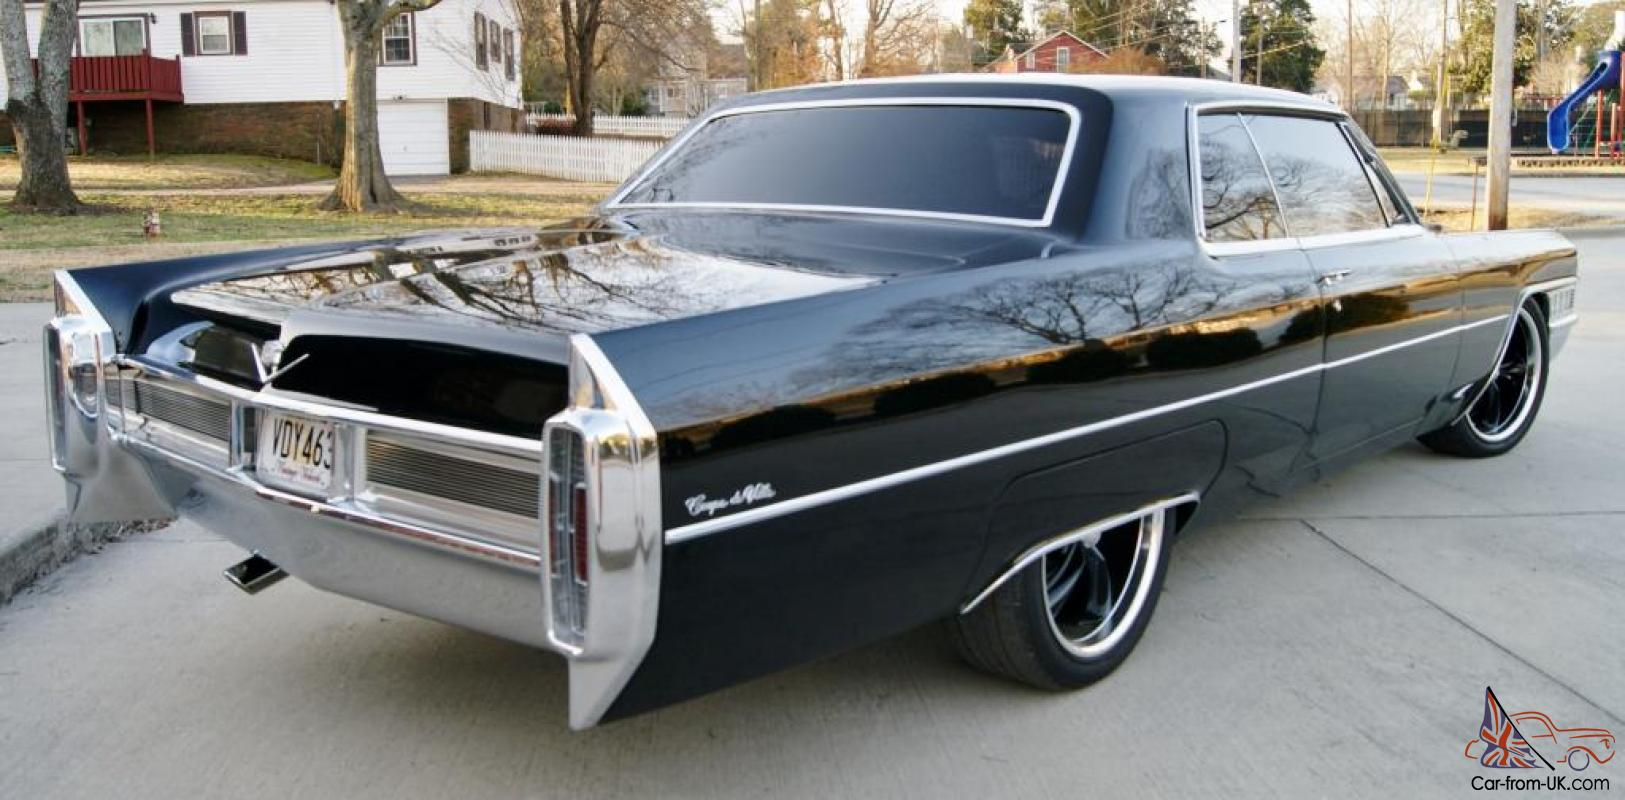 Fs Ft 1965 Cadillac Coupe Deville Black Sinister 73k Miles